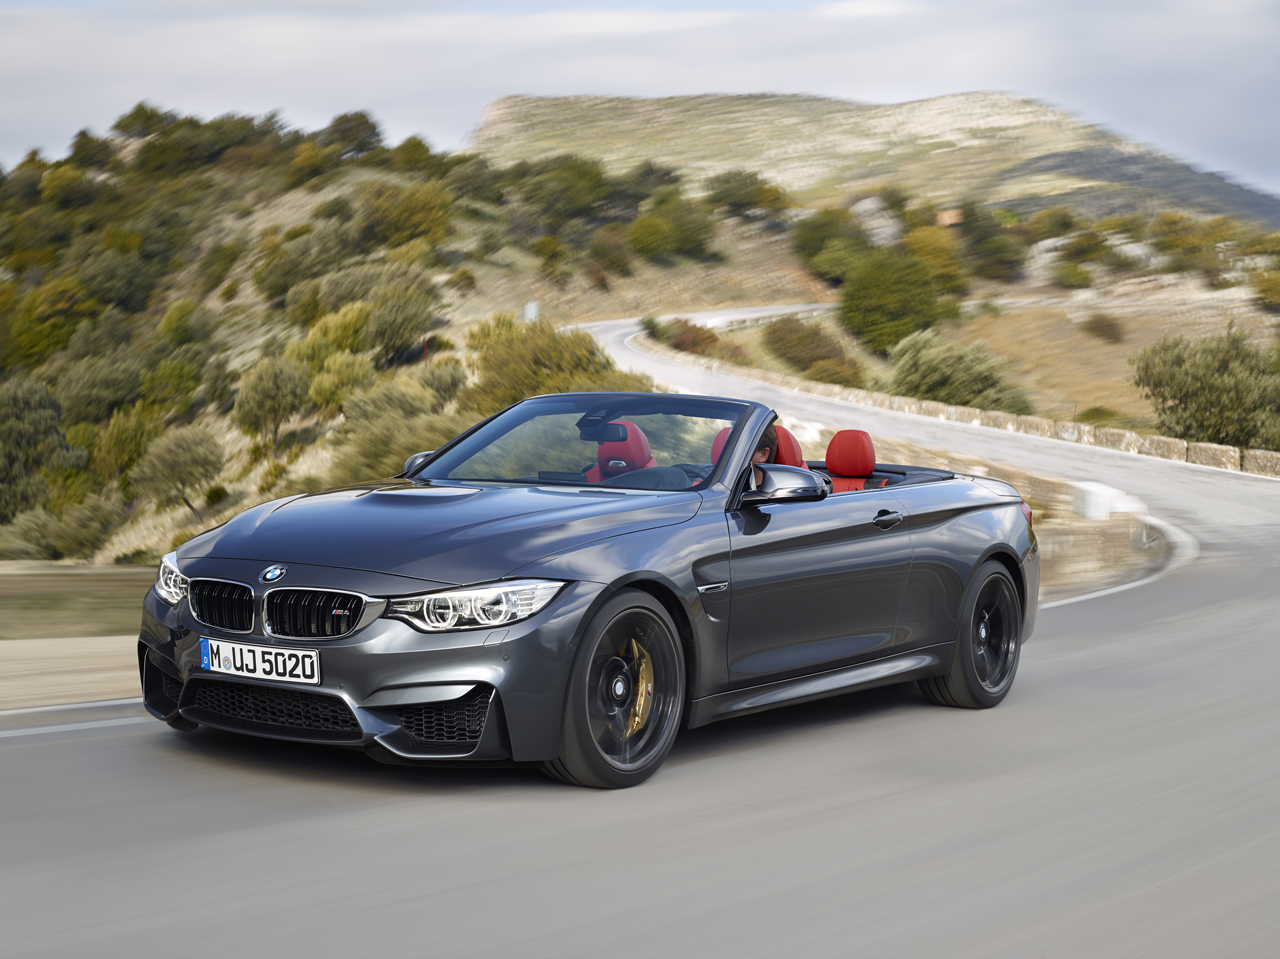 World Premier: The BMW M4 Convertible (With Gallery) - BimmerFile